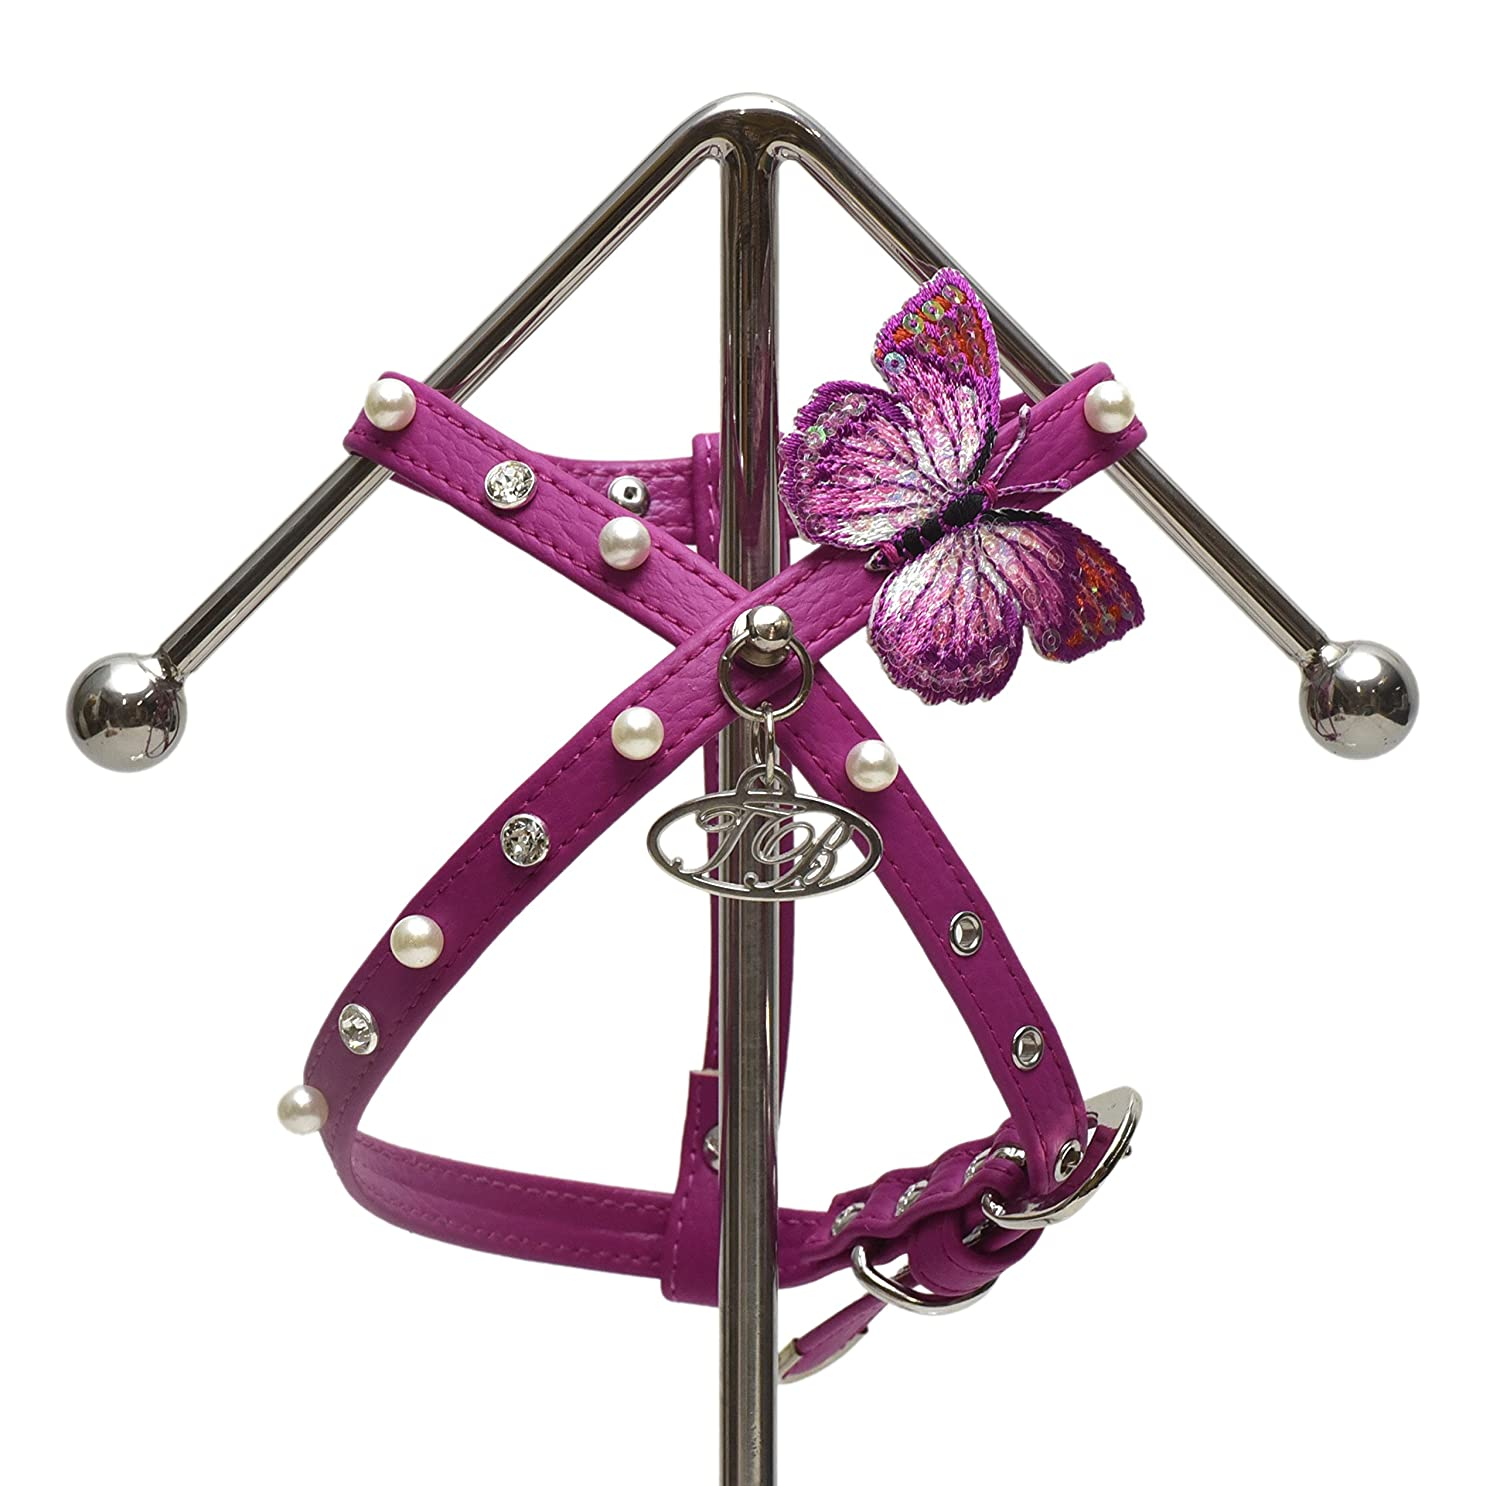 Fuchsia Medium Fuchsia Medium Trilly tutti Brilli Eliana Harness with Pearls and Butterfly for Dogs, Medium, Fuchsia